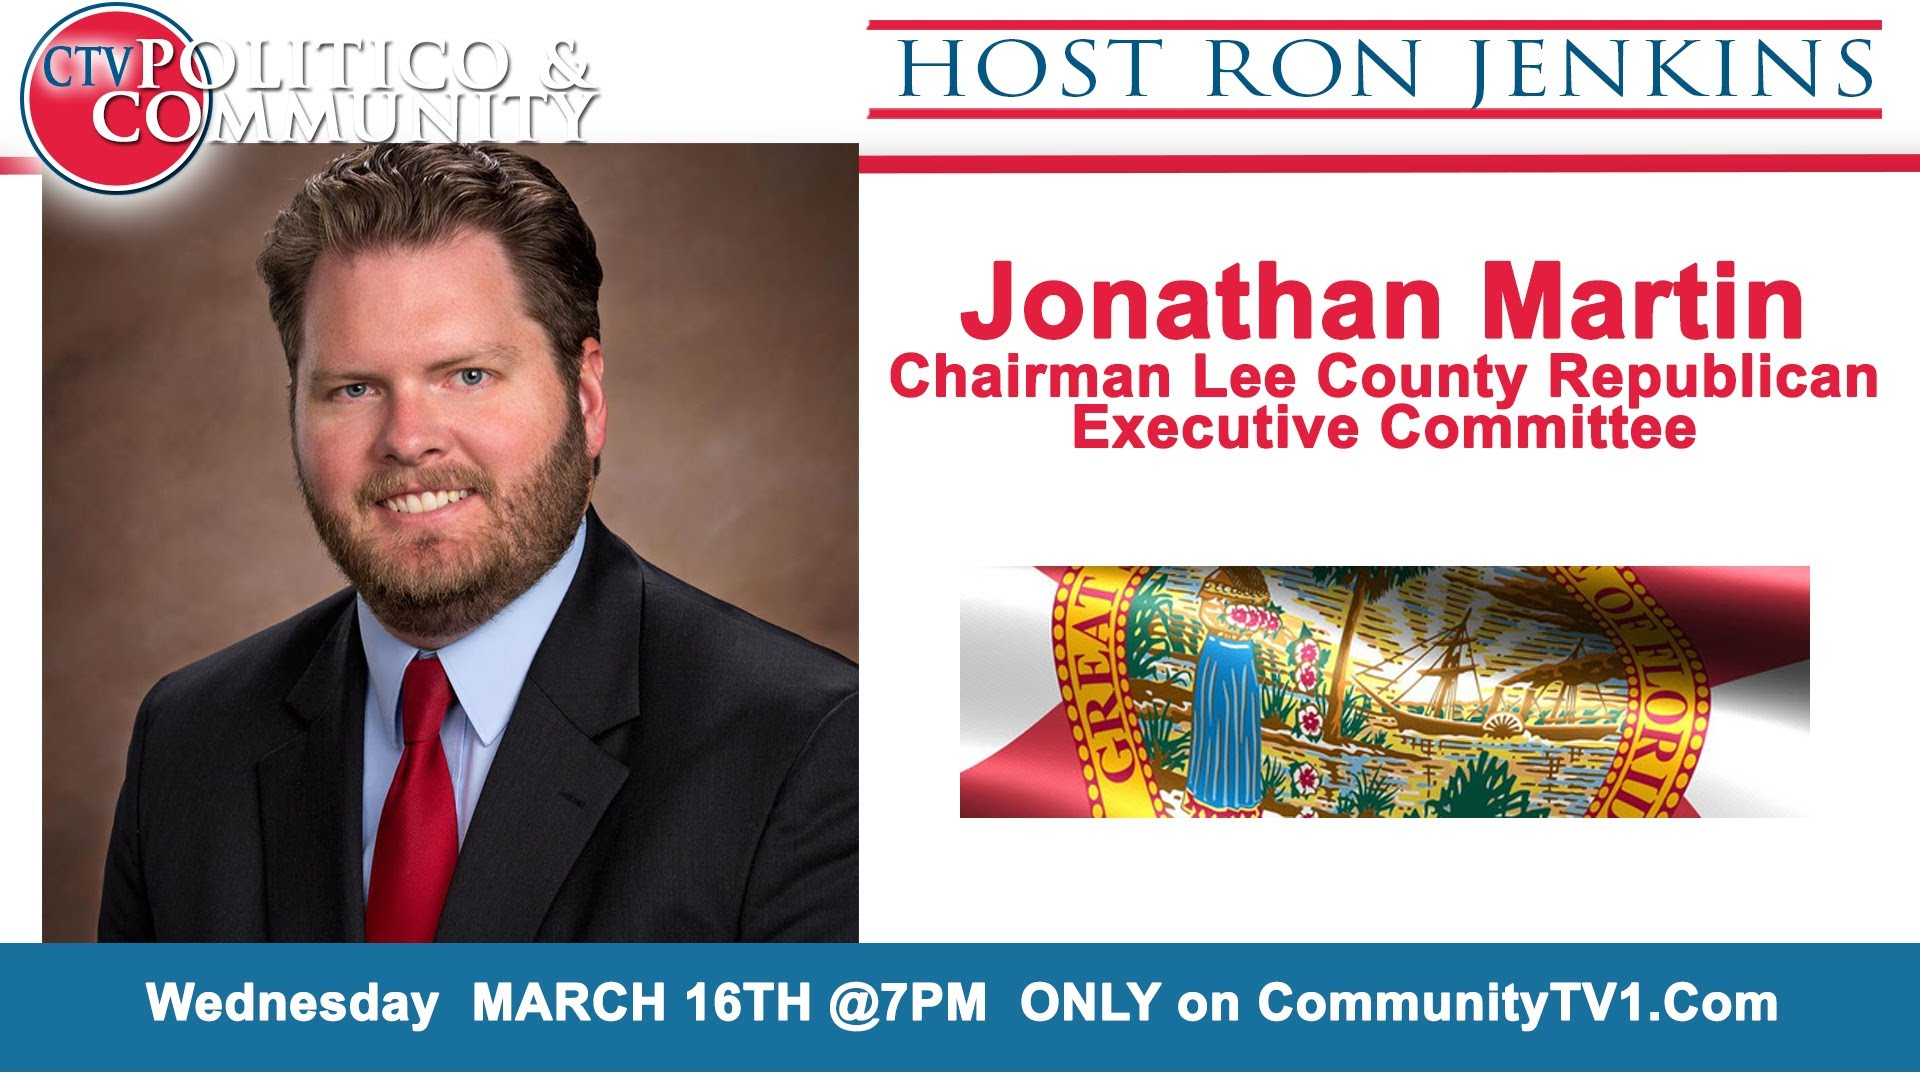 [3-16-2016] CTV Politico & Community with Jonathan Martin of the the LC Republican E.C.